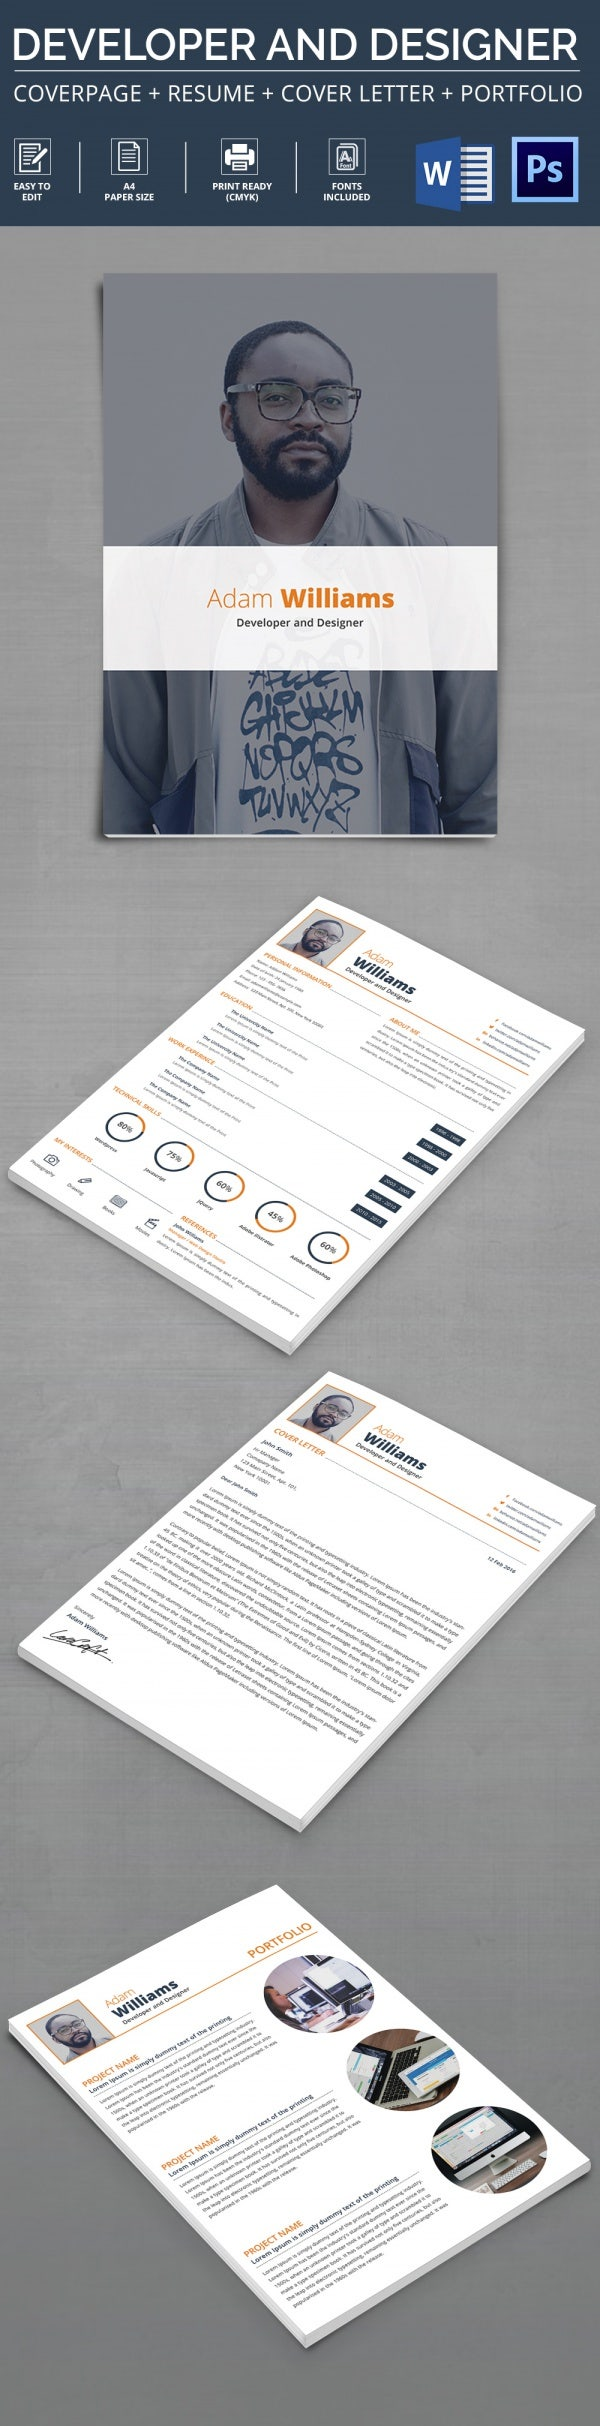 developer and designer resume template - Resume Format For Professional